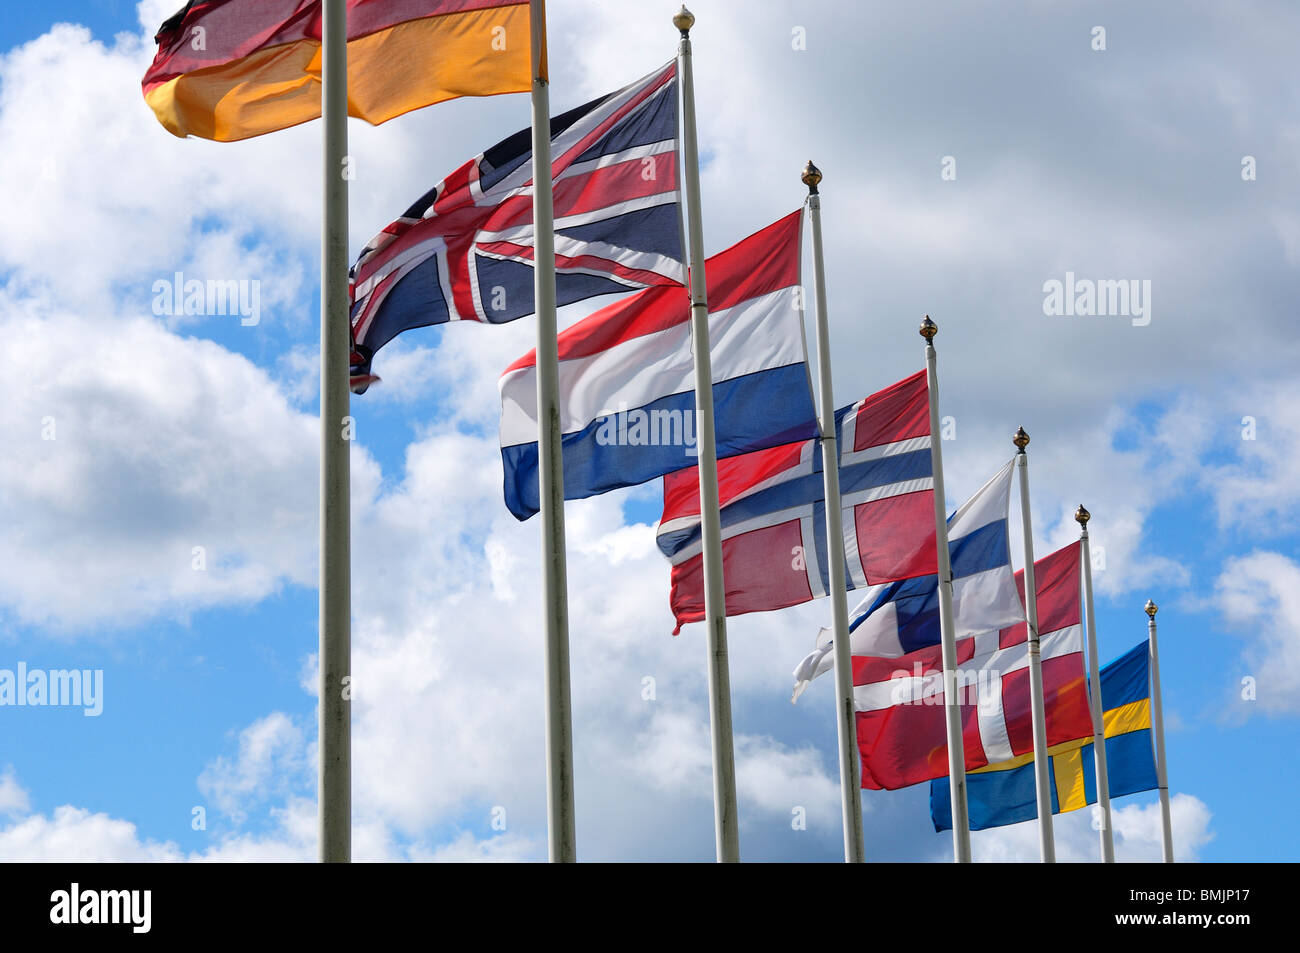 Scandinavian Peninsula Sweden Ostergotland Soderkoping Row Of Stock Photo Alamy